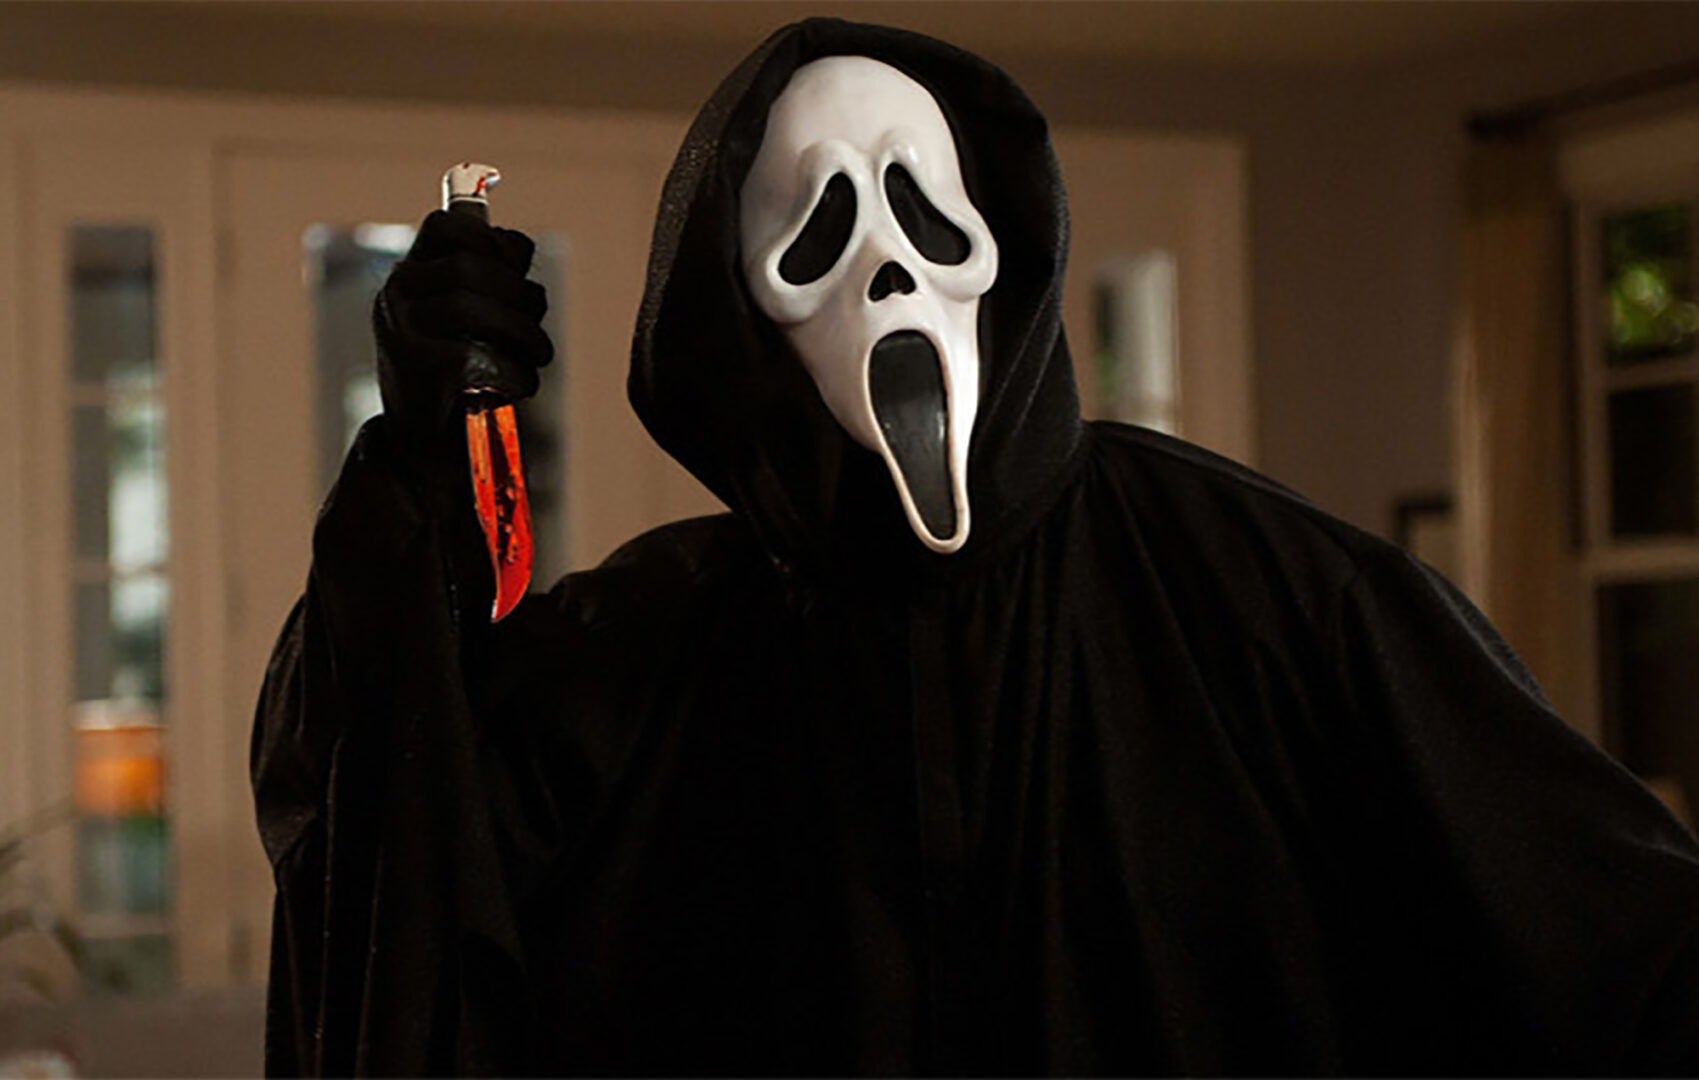 Call of Duty Ghostface